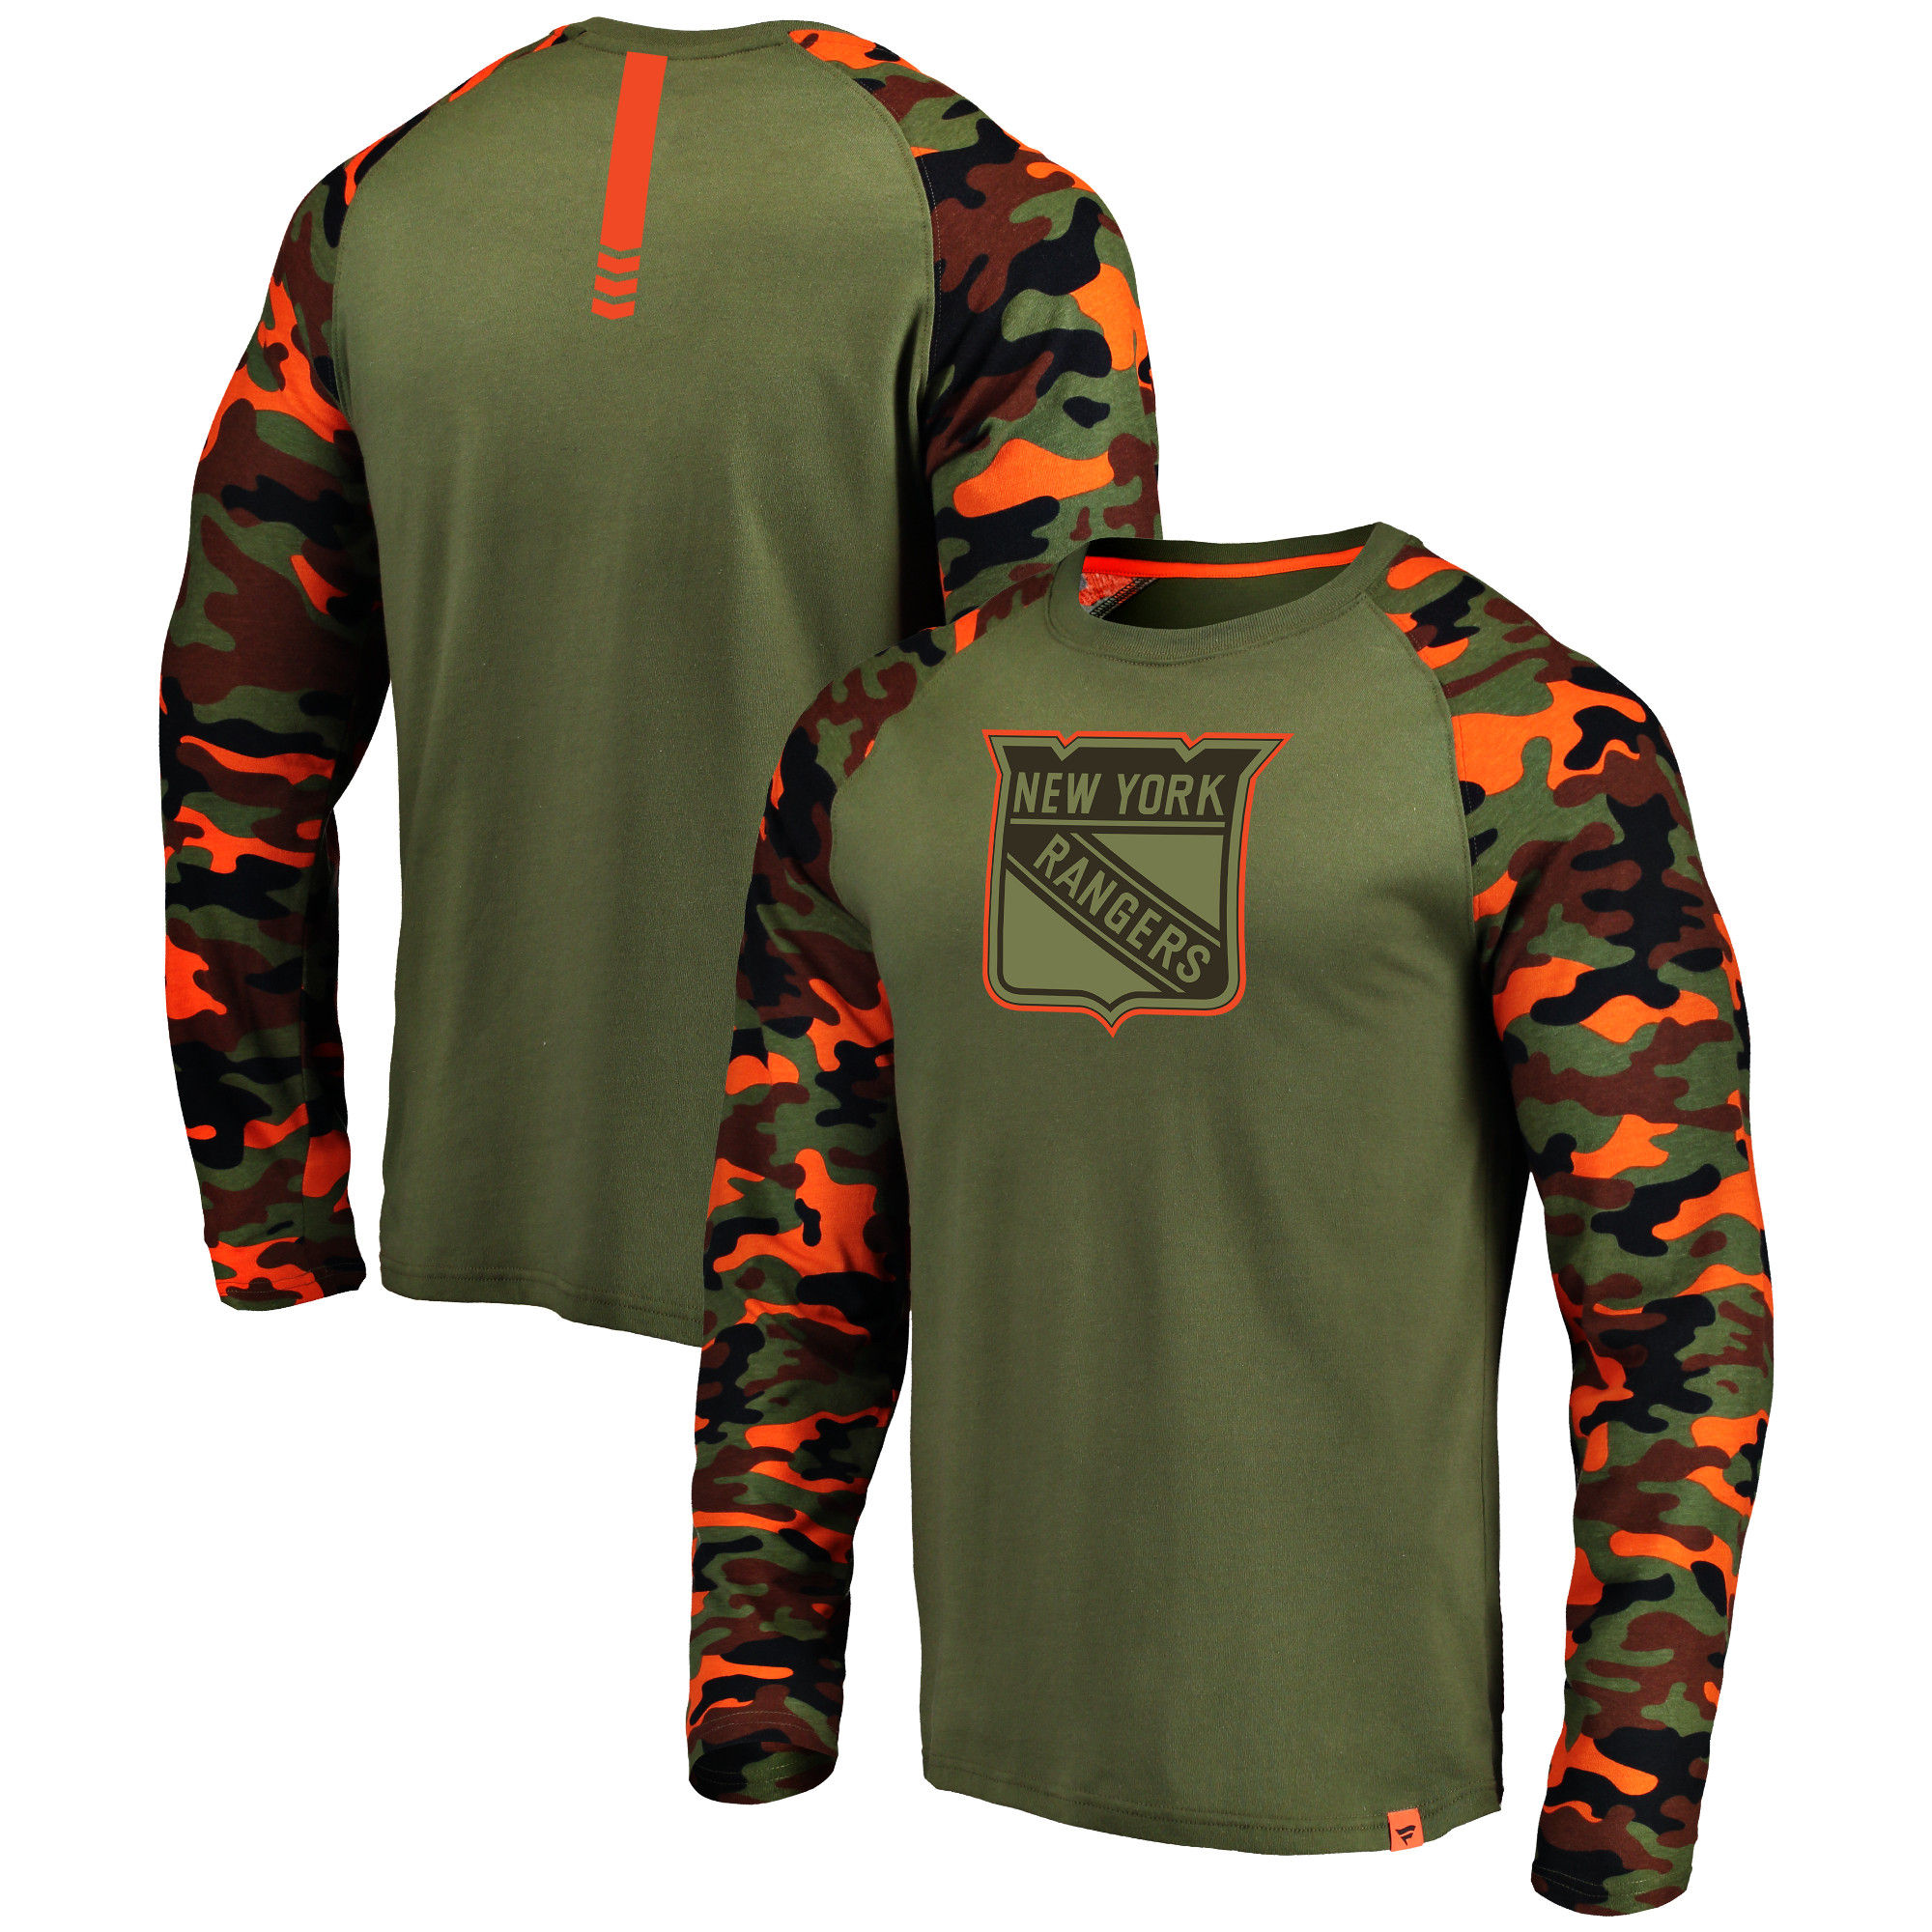 New York Rangers Fanatics Branded Olive/Camo Recon Long Sleeve Raglan T-Shirt